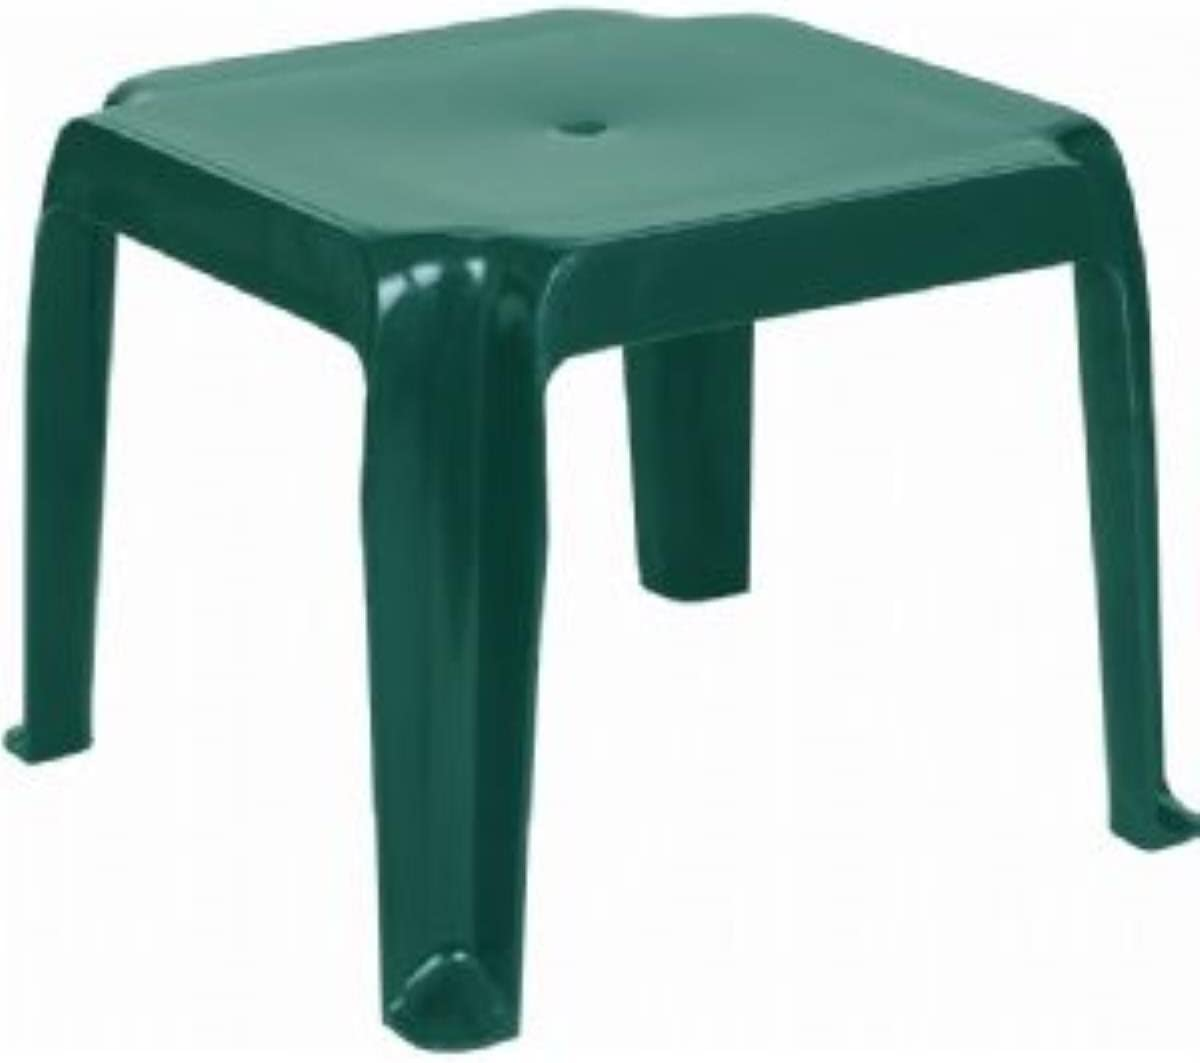 Compamia Sunray Square Resin Patio Quantity limited in Green Side Max 53% OFF Table Commerci